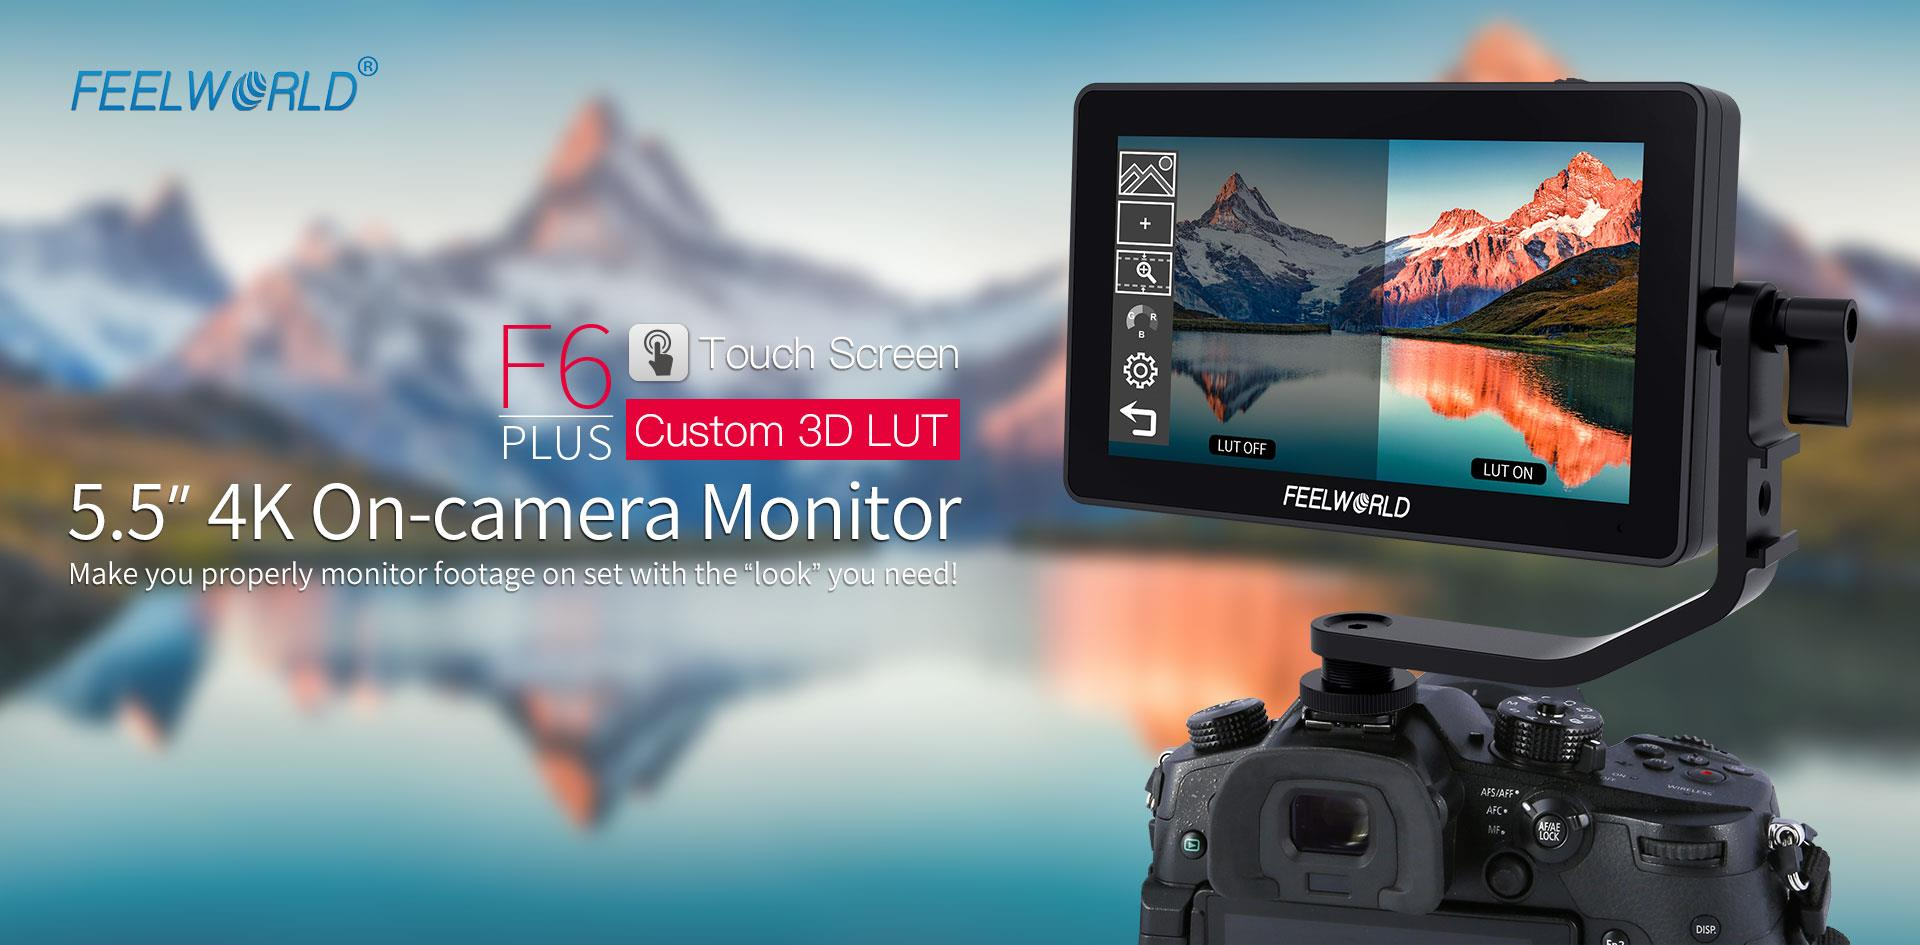 3d lut touch screen monitor